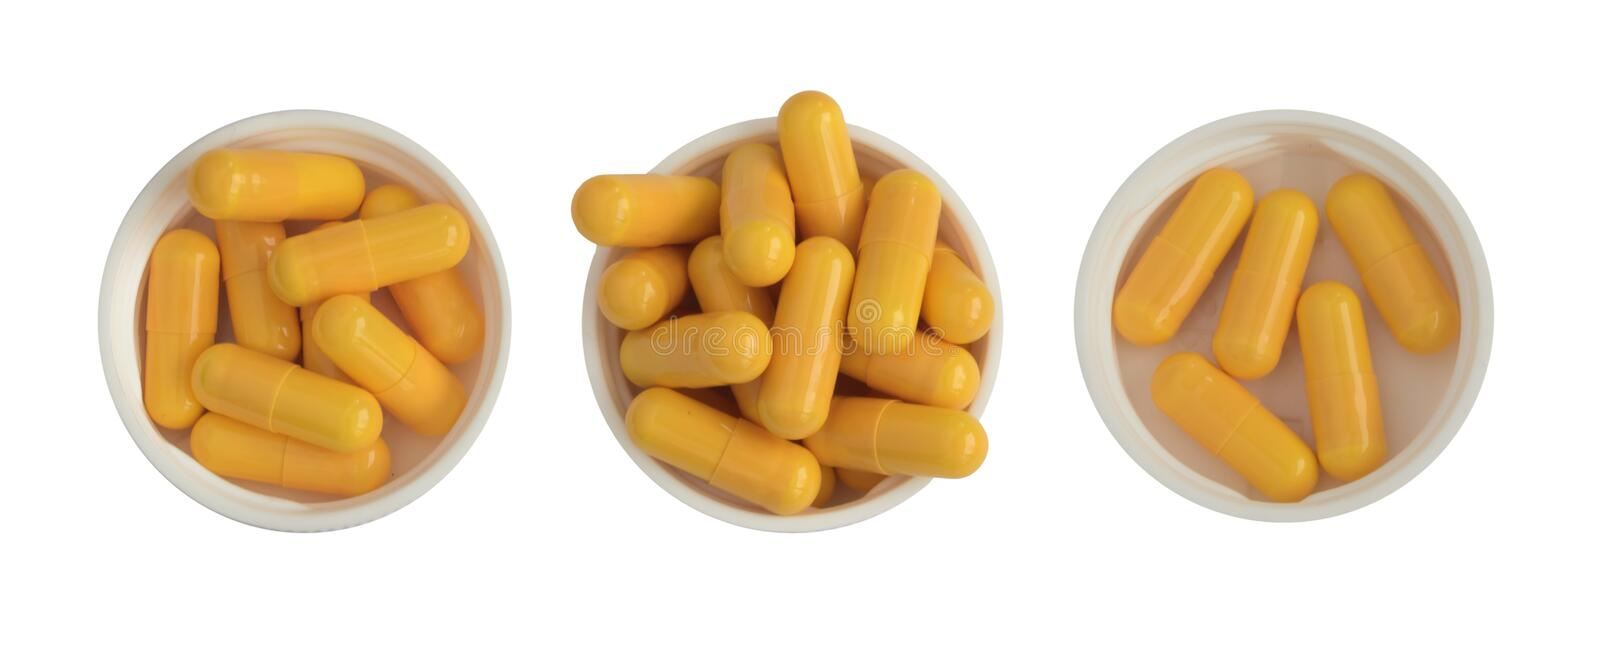 Pharmaceutical Medicine Pills and Tablets in White Plastic Cups Isolated. Yellow Pharmaceutical Medicine Pills and Tablets in White Plastic Cups Isolated stock photos